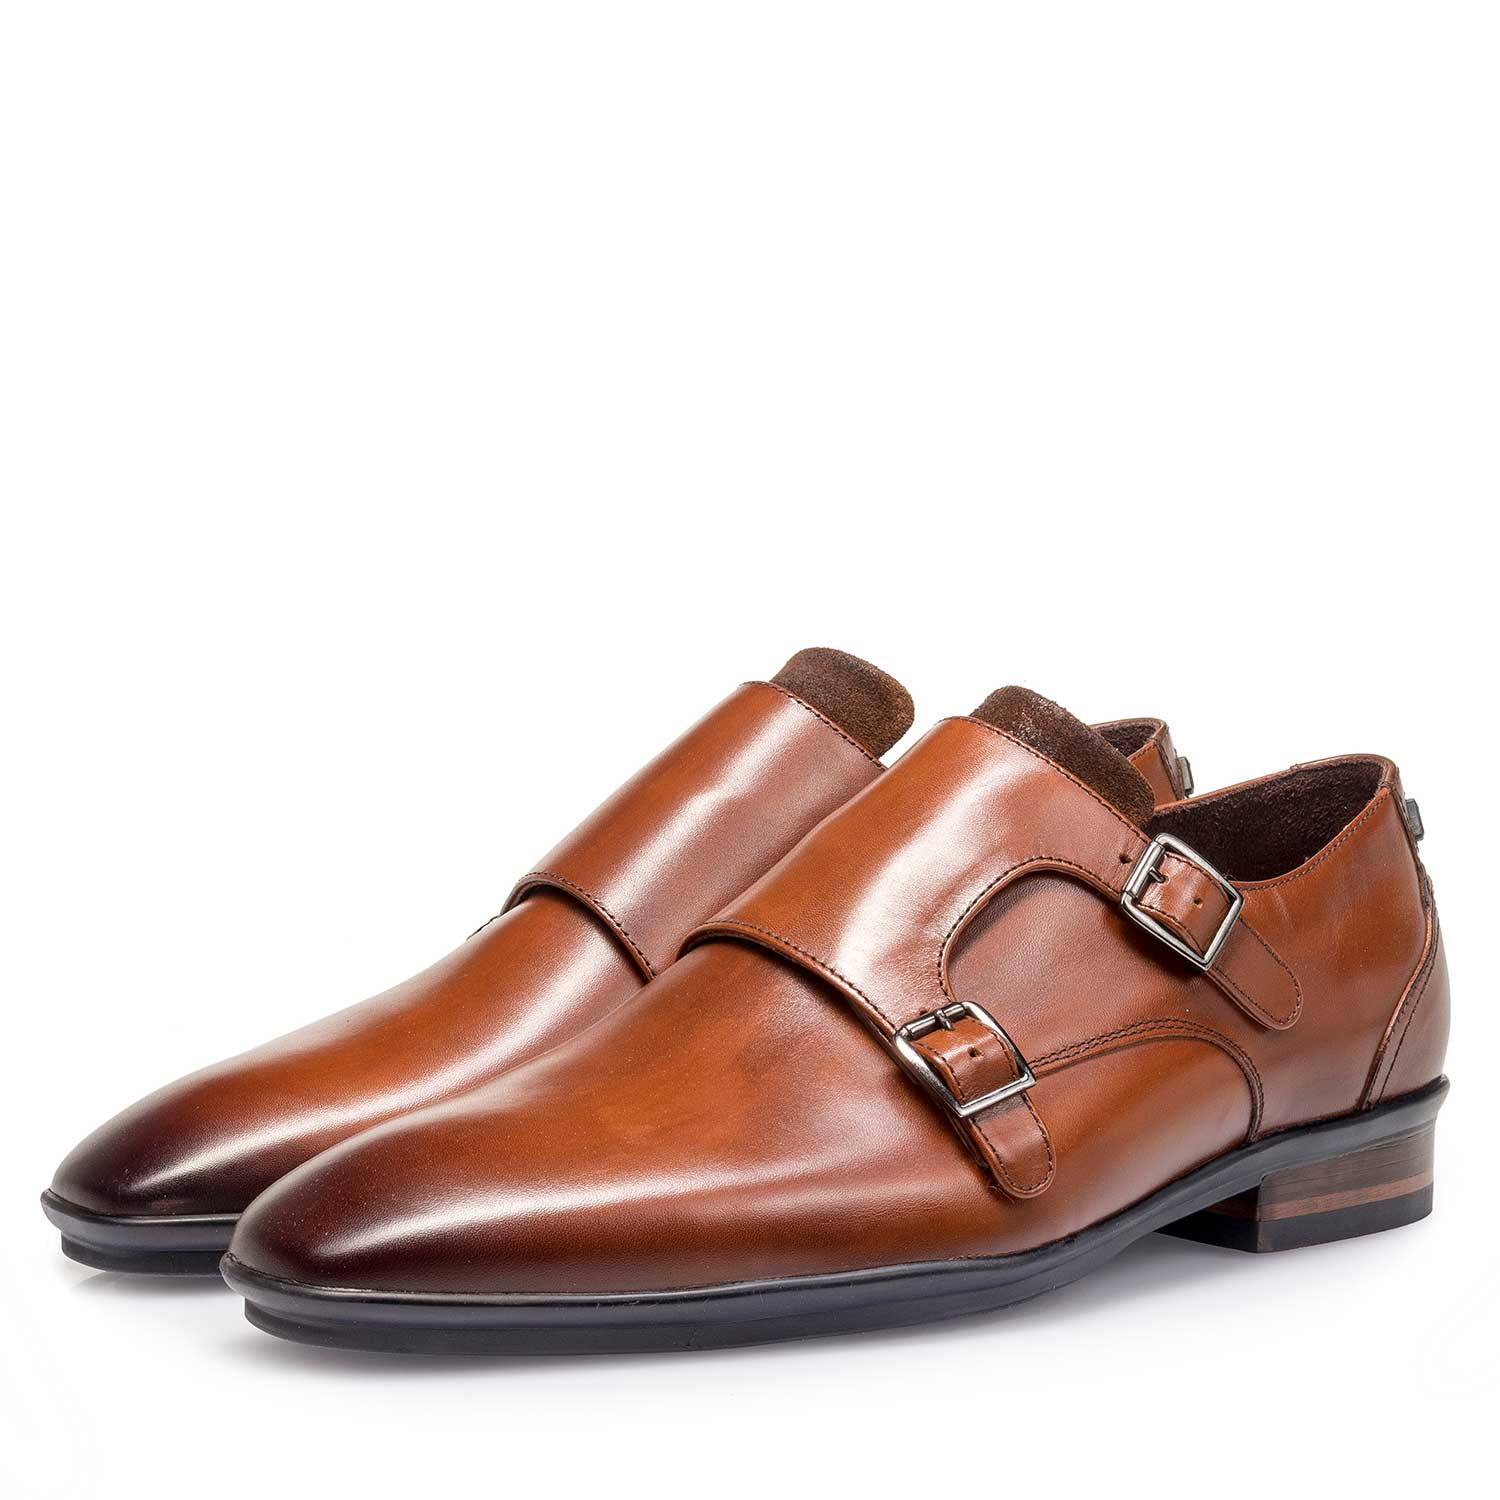 12132/00 - Cognac-coloured calf leather double buckle monk strap